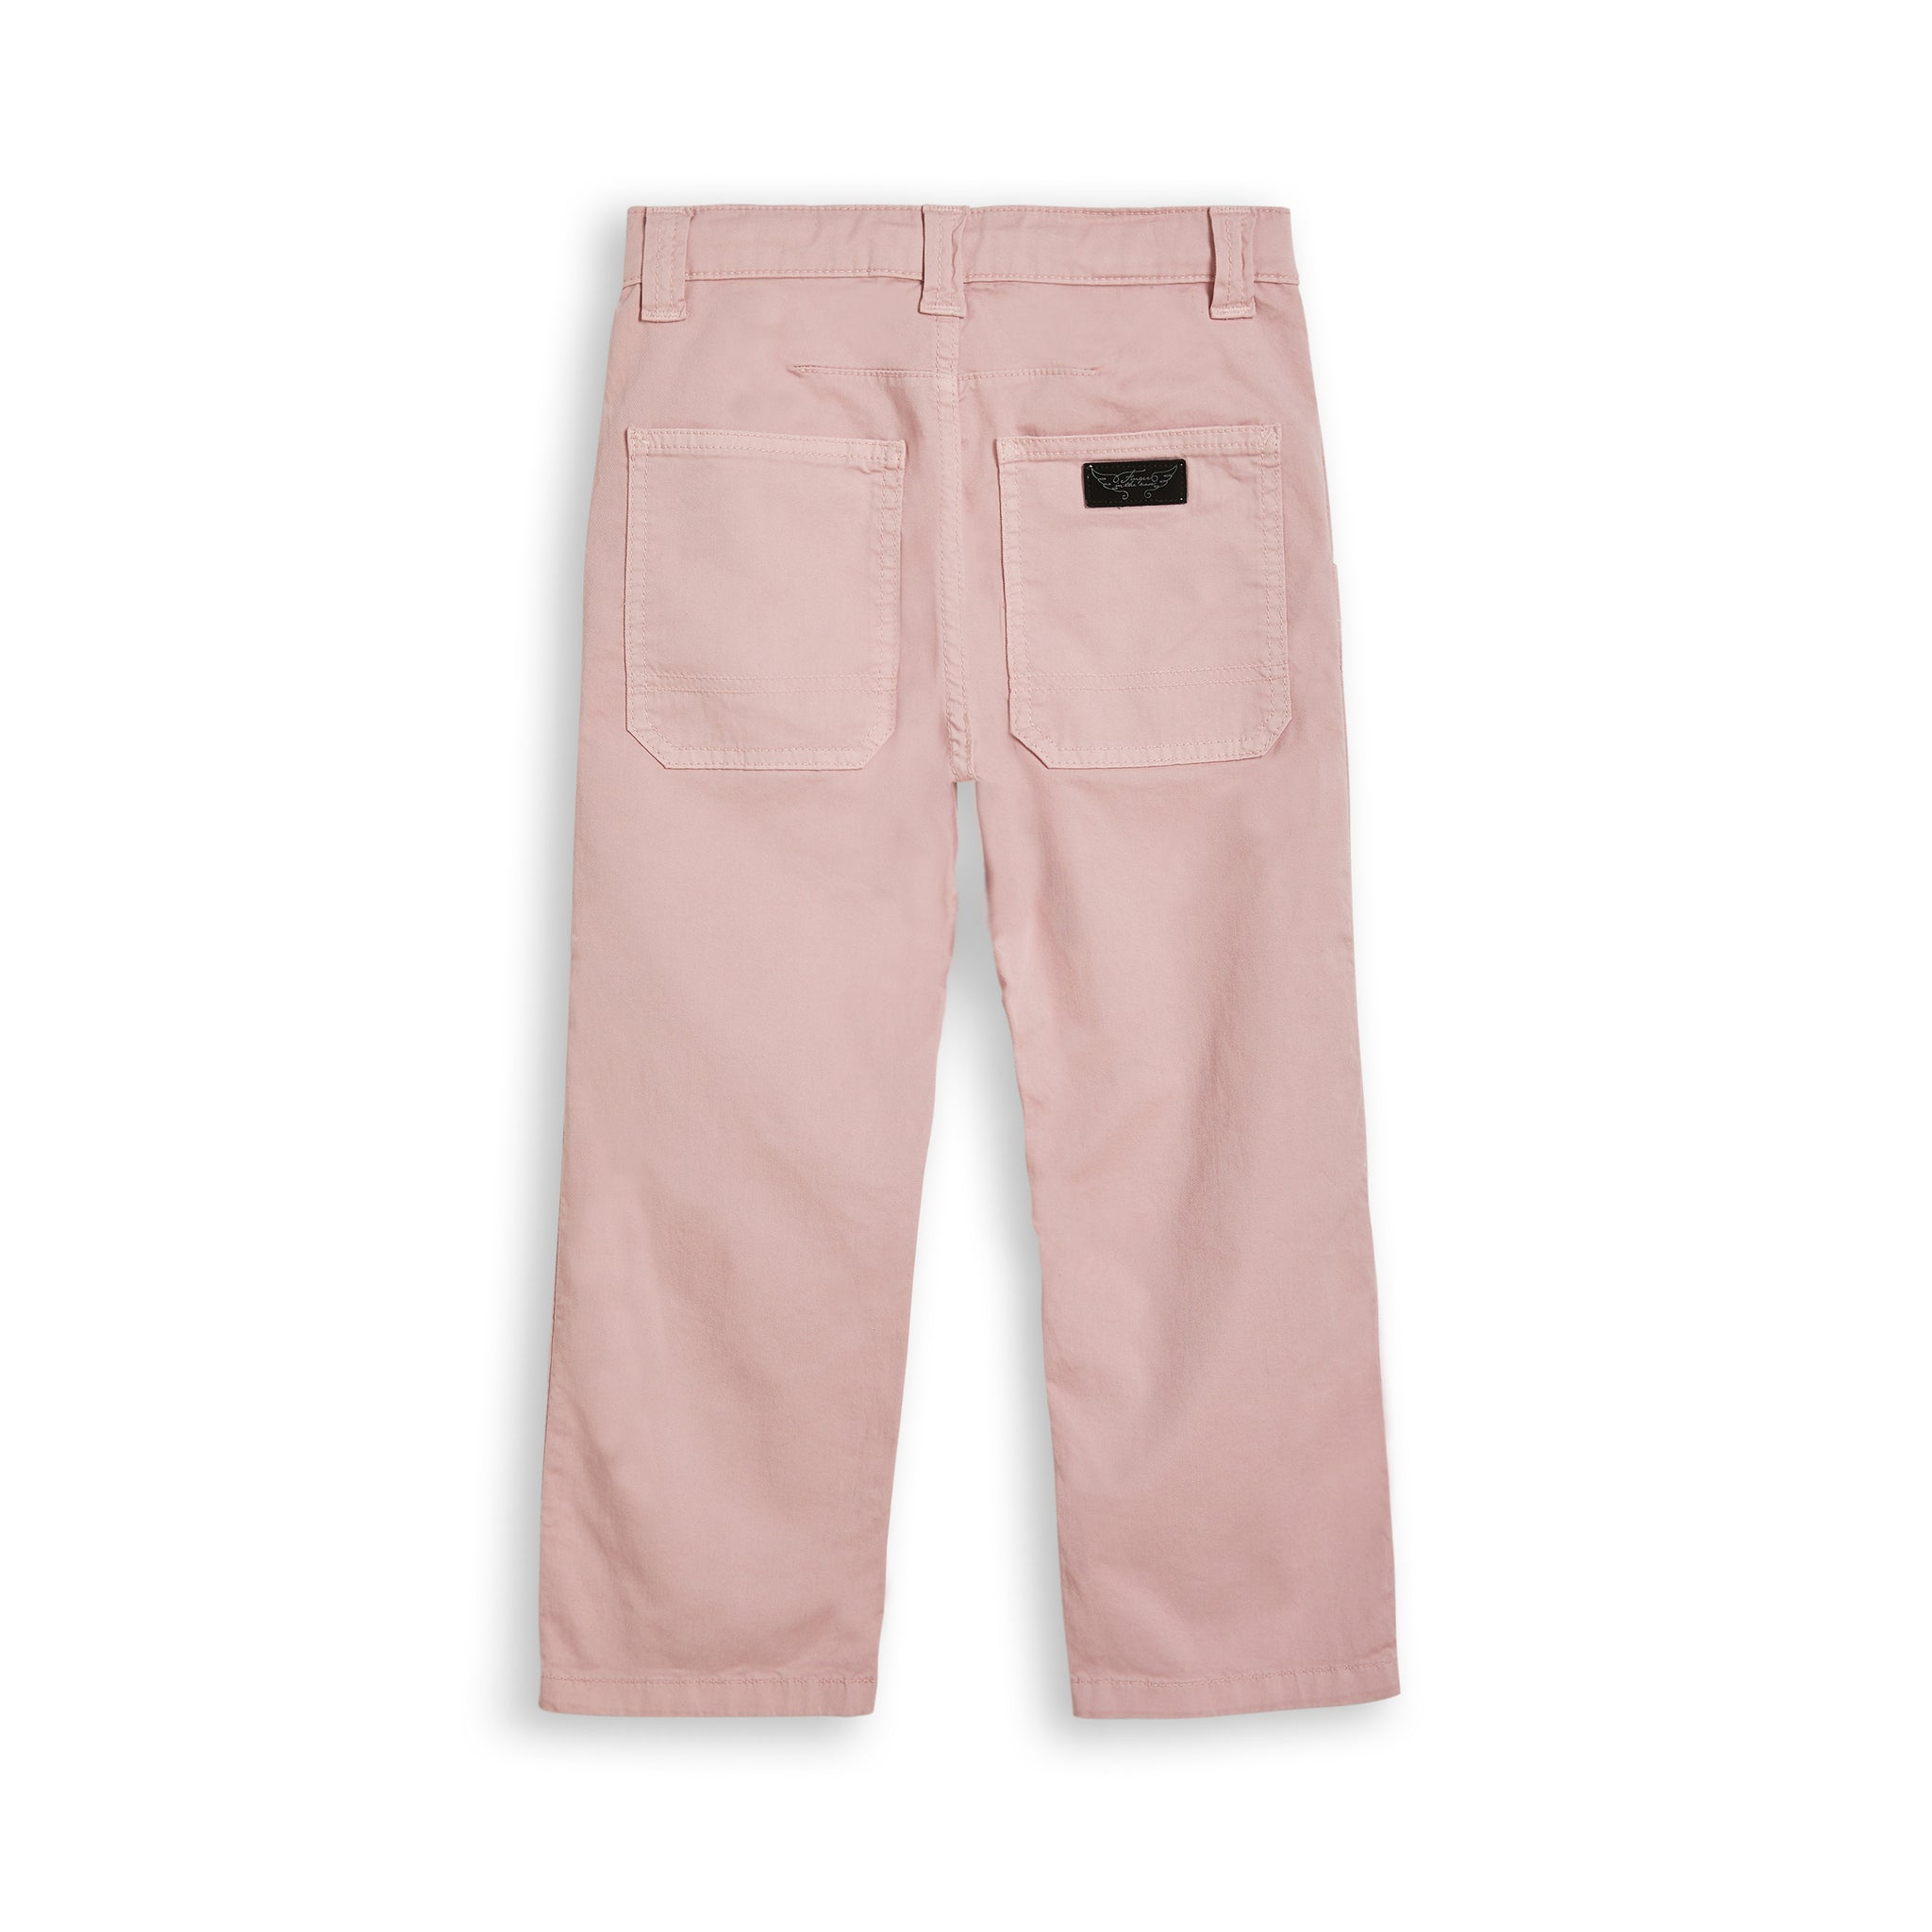 SISTER Pale Pink - Baggy Fit Pants 2